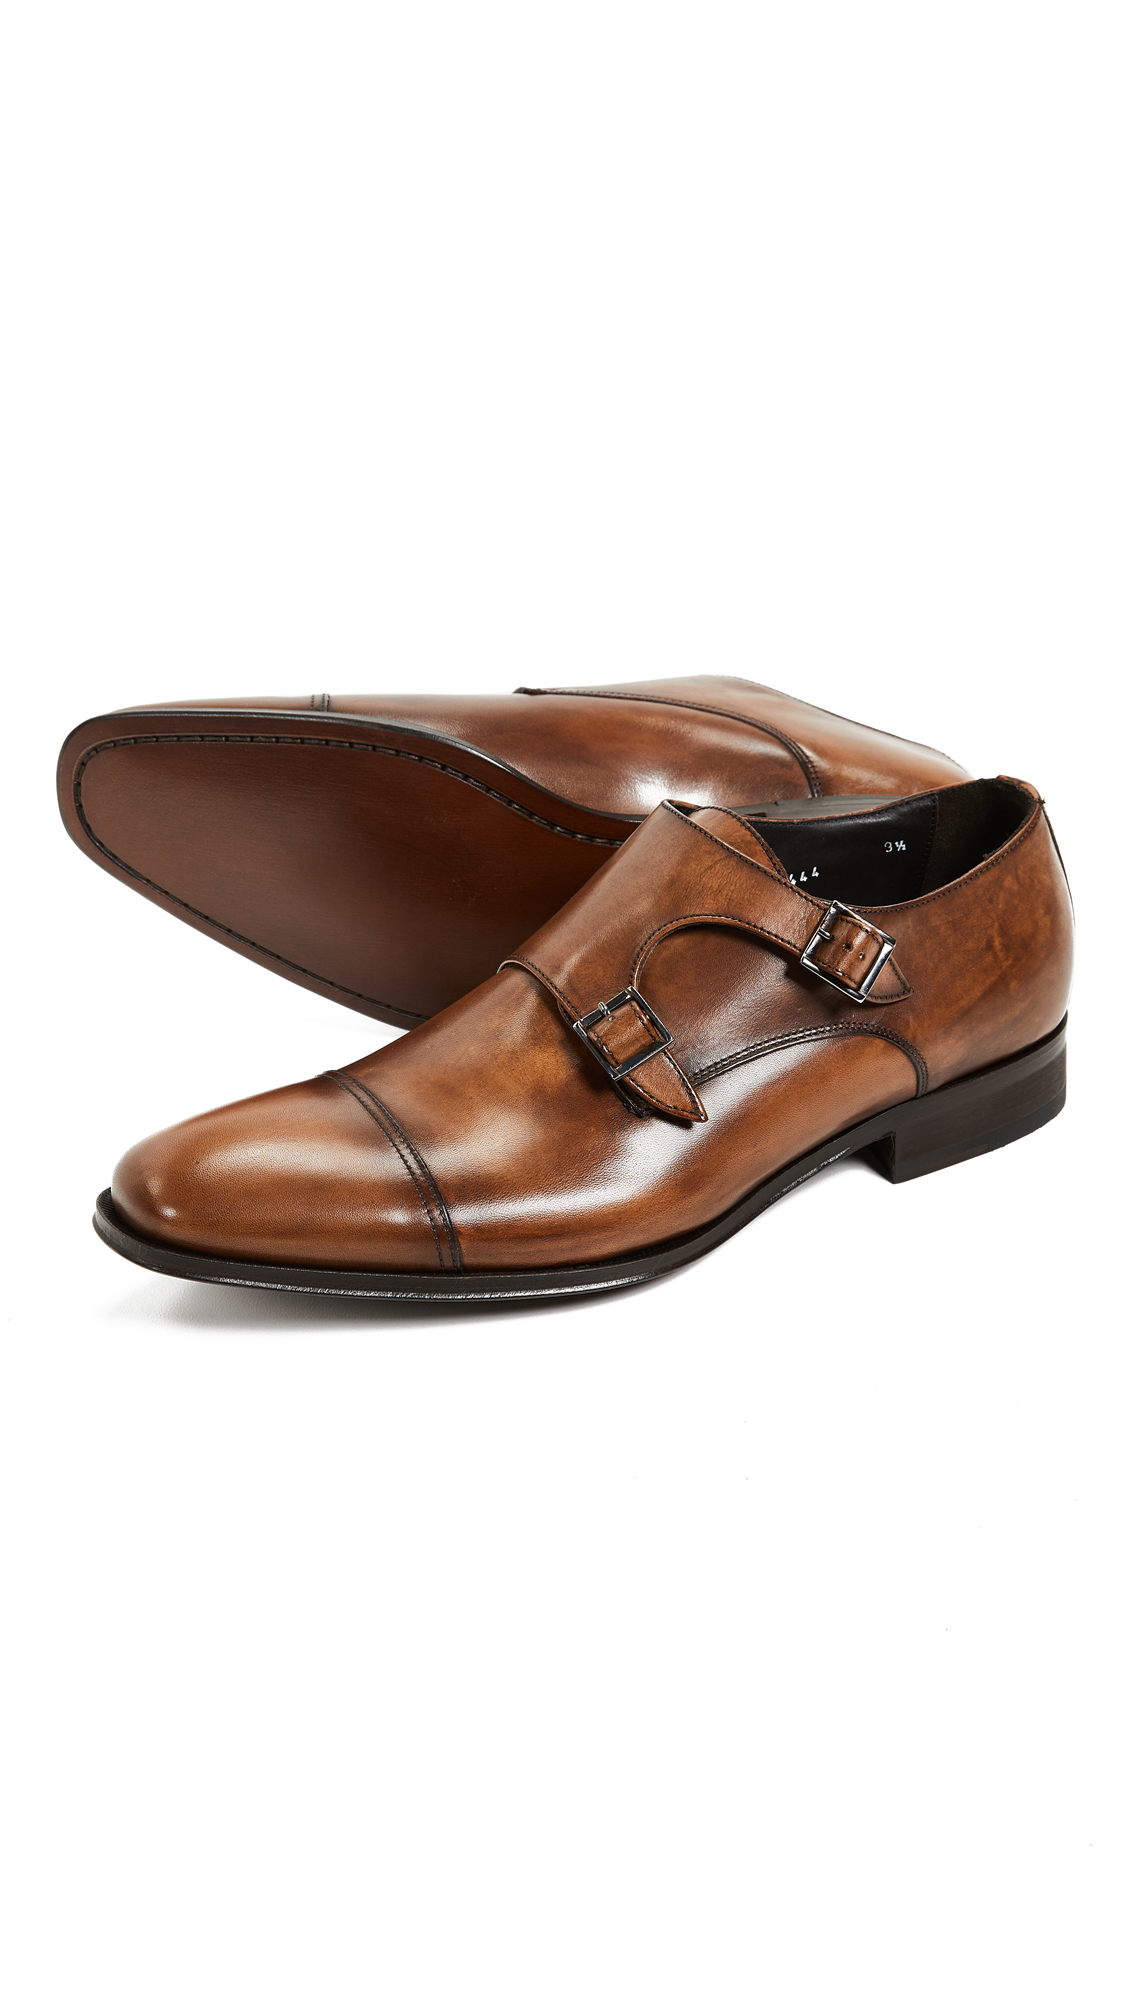 18009b94b11ac To Boot New York Grant Double Monk Strap Shoes